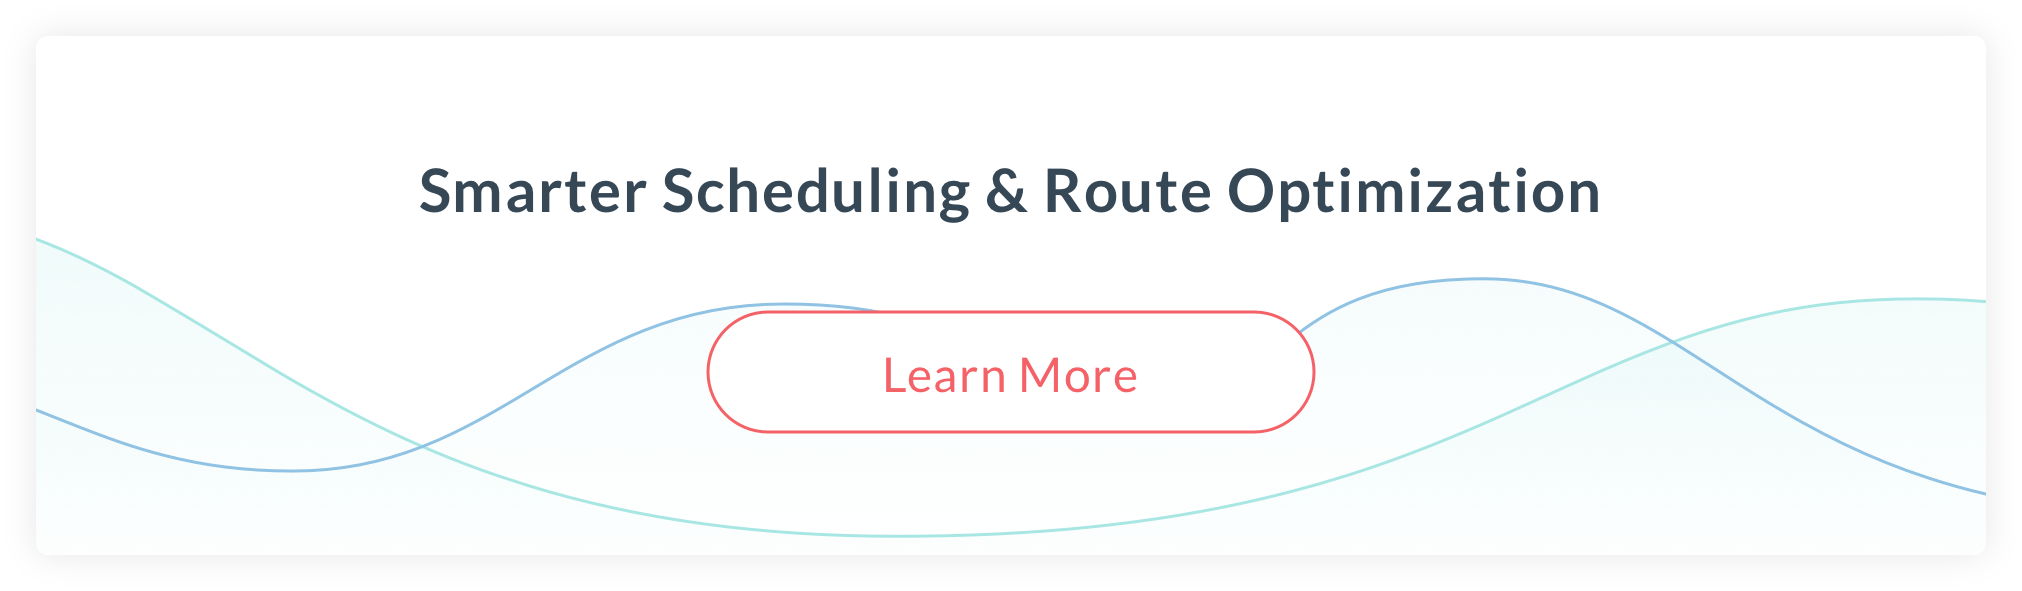 Smarter Scheduling & Route Optimization